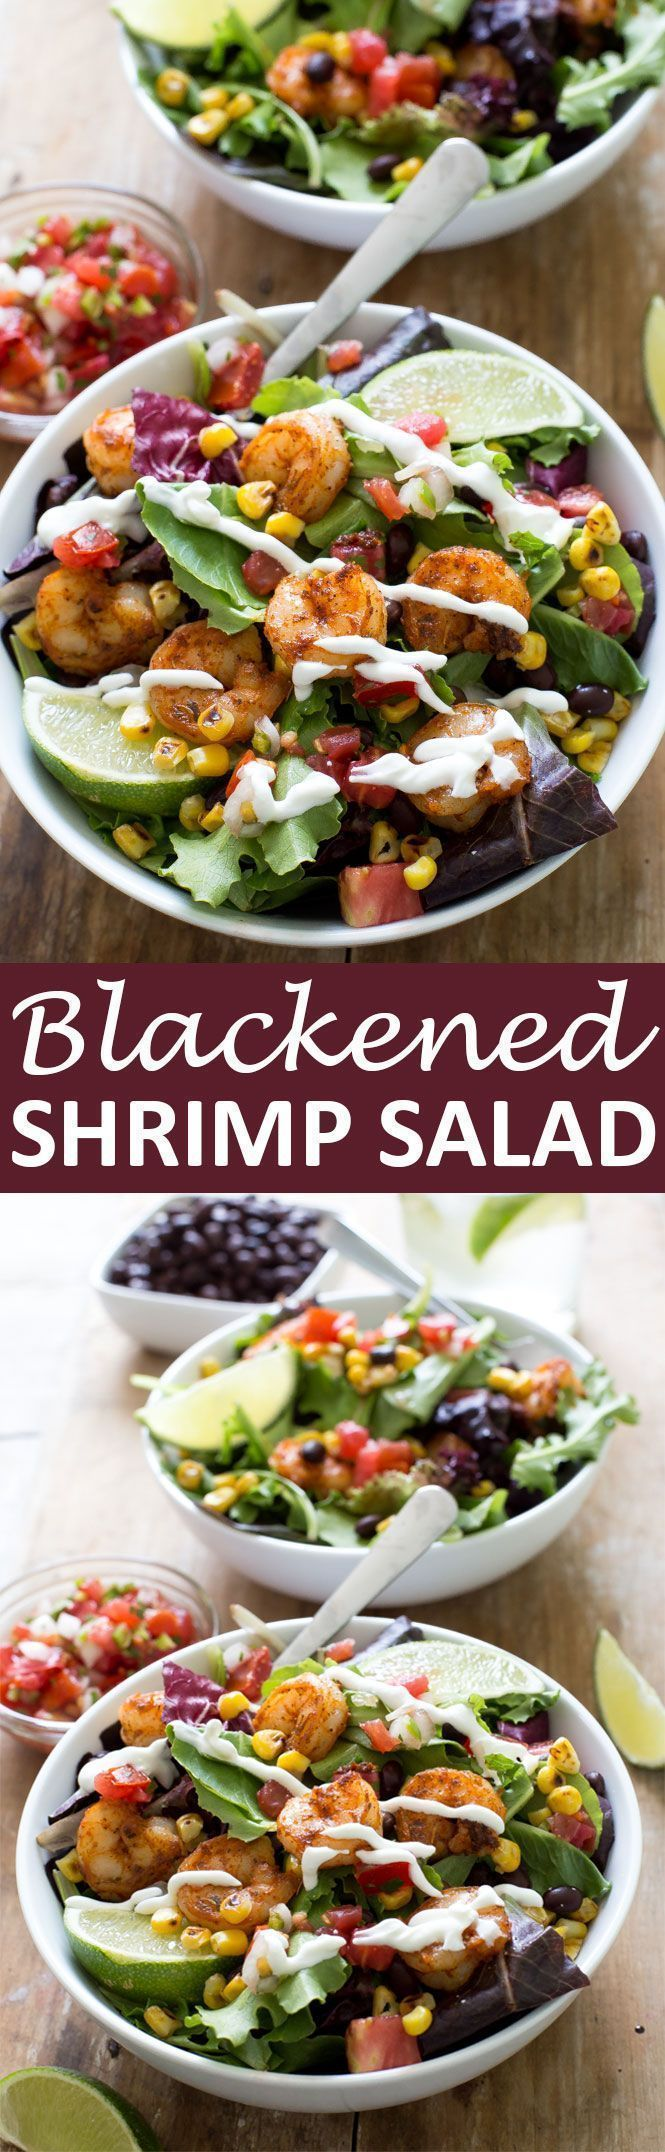 Blackened Shrimp Salad... made this July 5,2016... DELICIOUS!